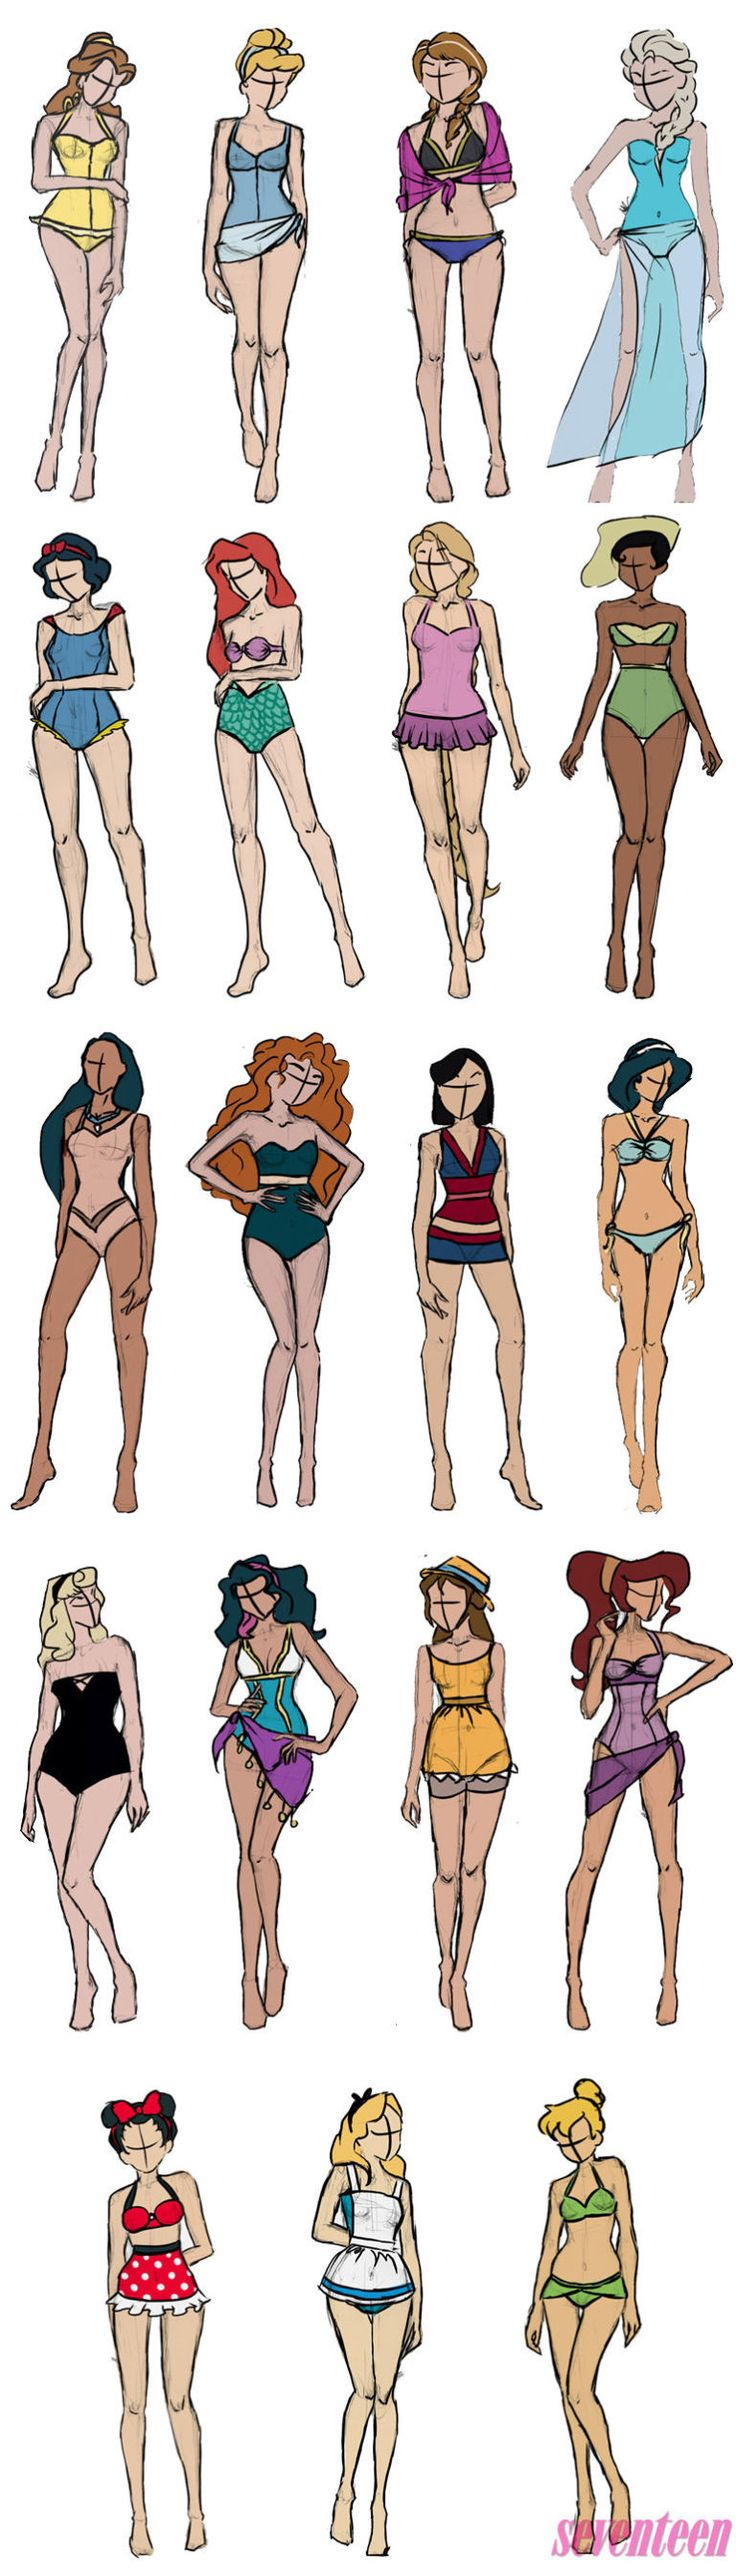 If the Disney Princesses Went on Spring Break, This Is What They'd Wear  - Cosmopolitan.com